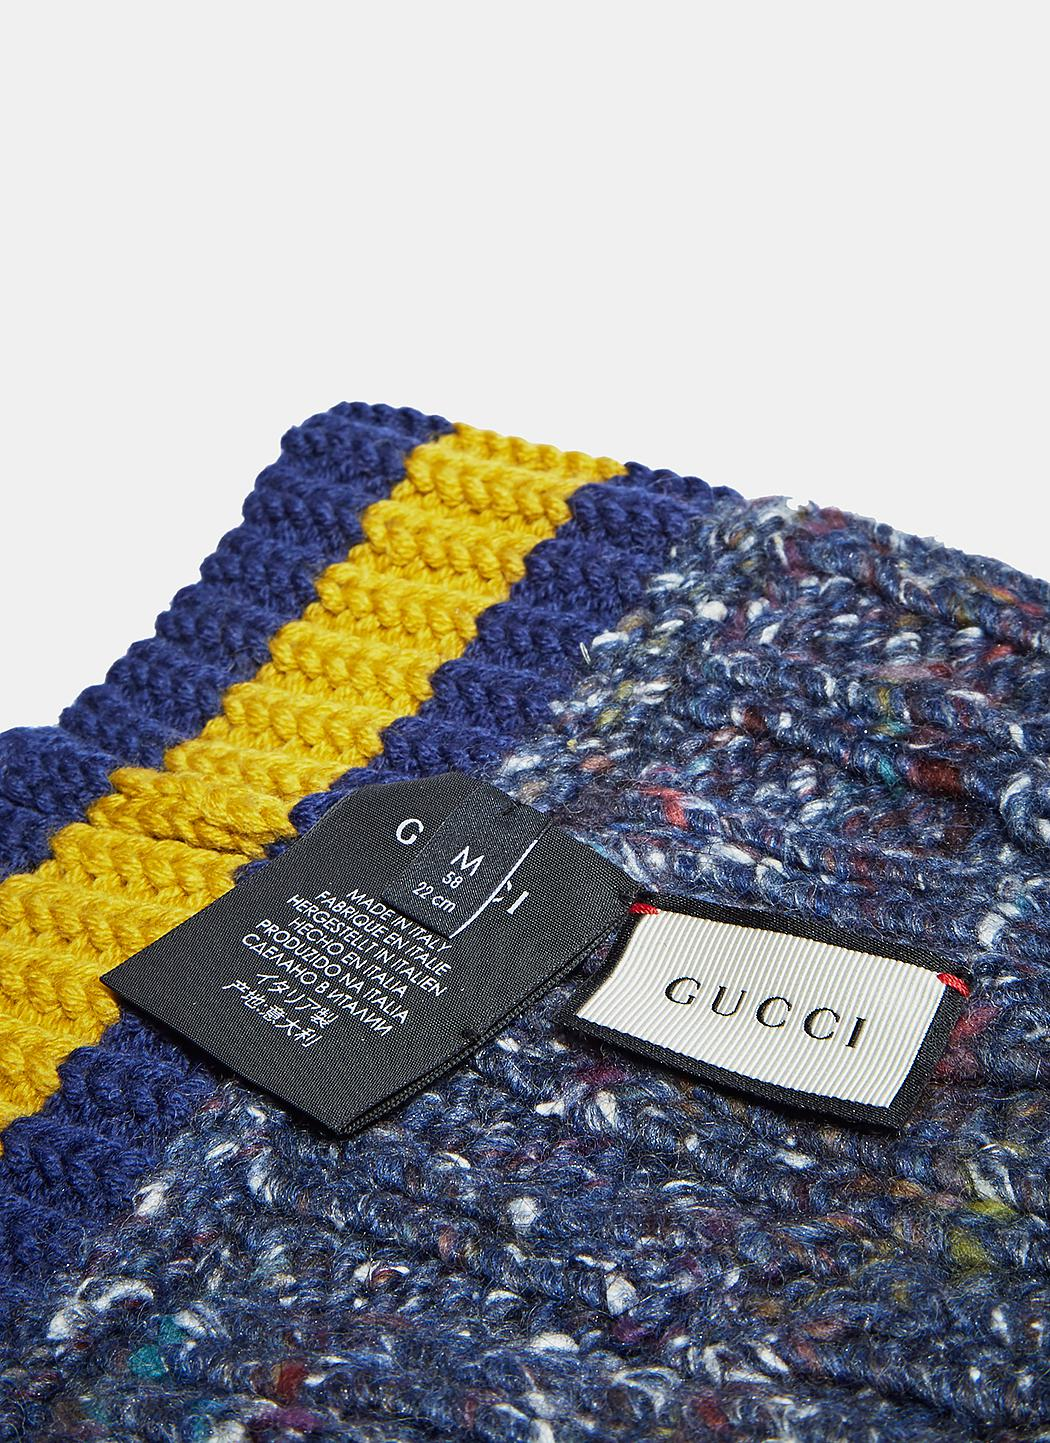 093d9404e299 Lyst - Gucci Men s Oversized Cable Knit Beanie In Navy in Blue for Men